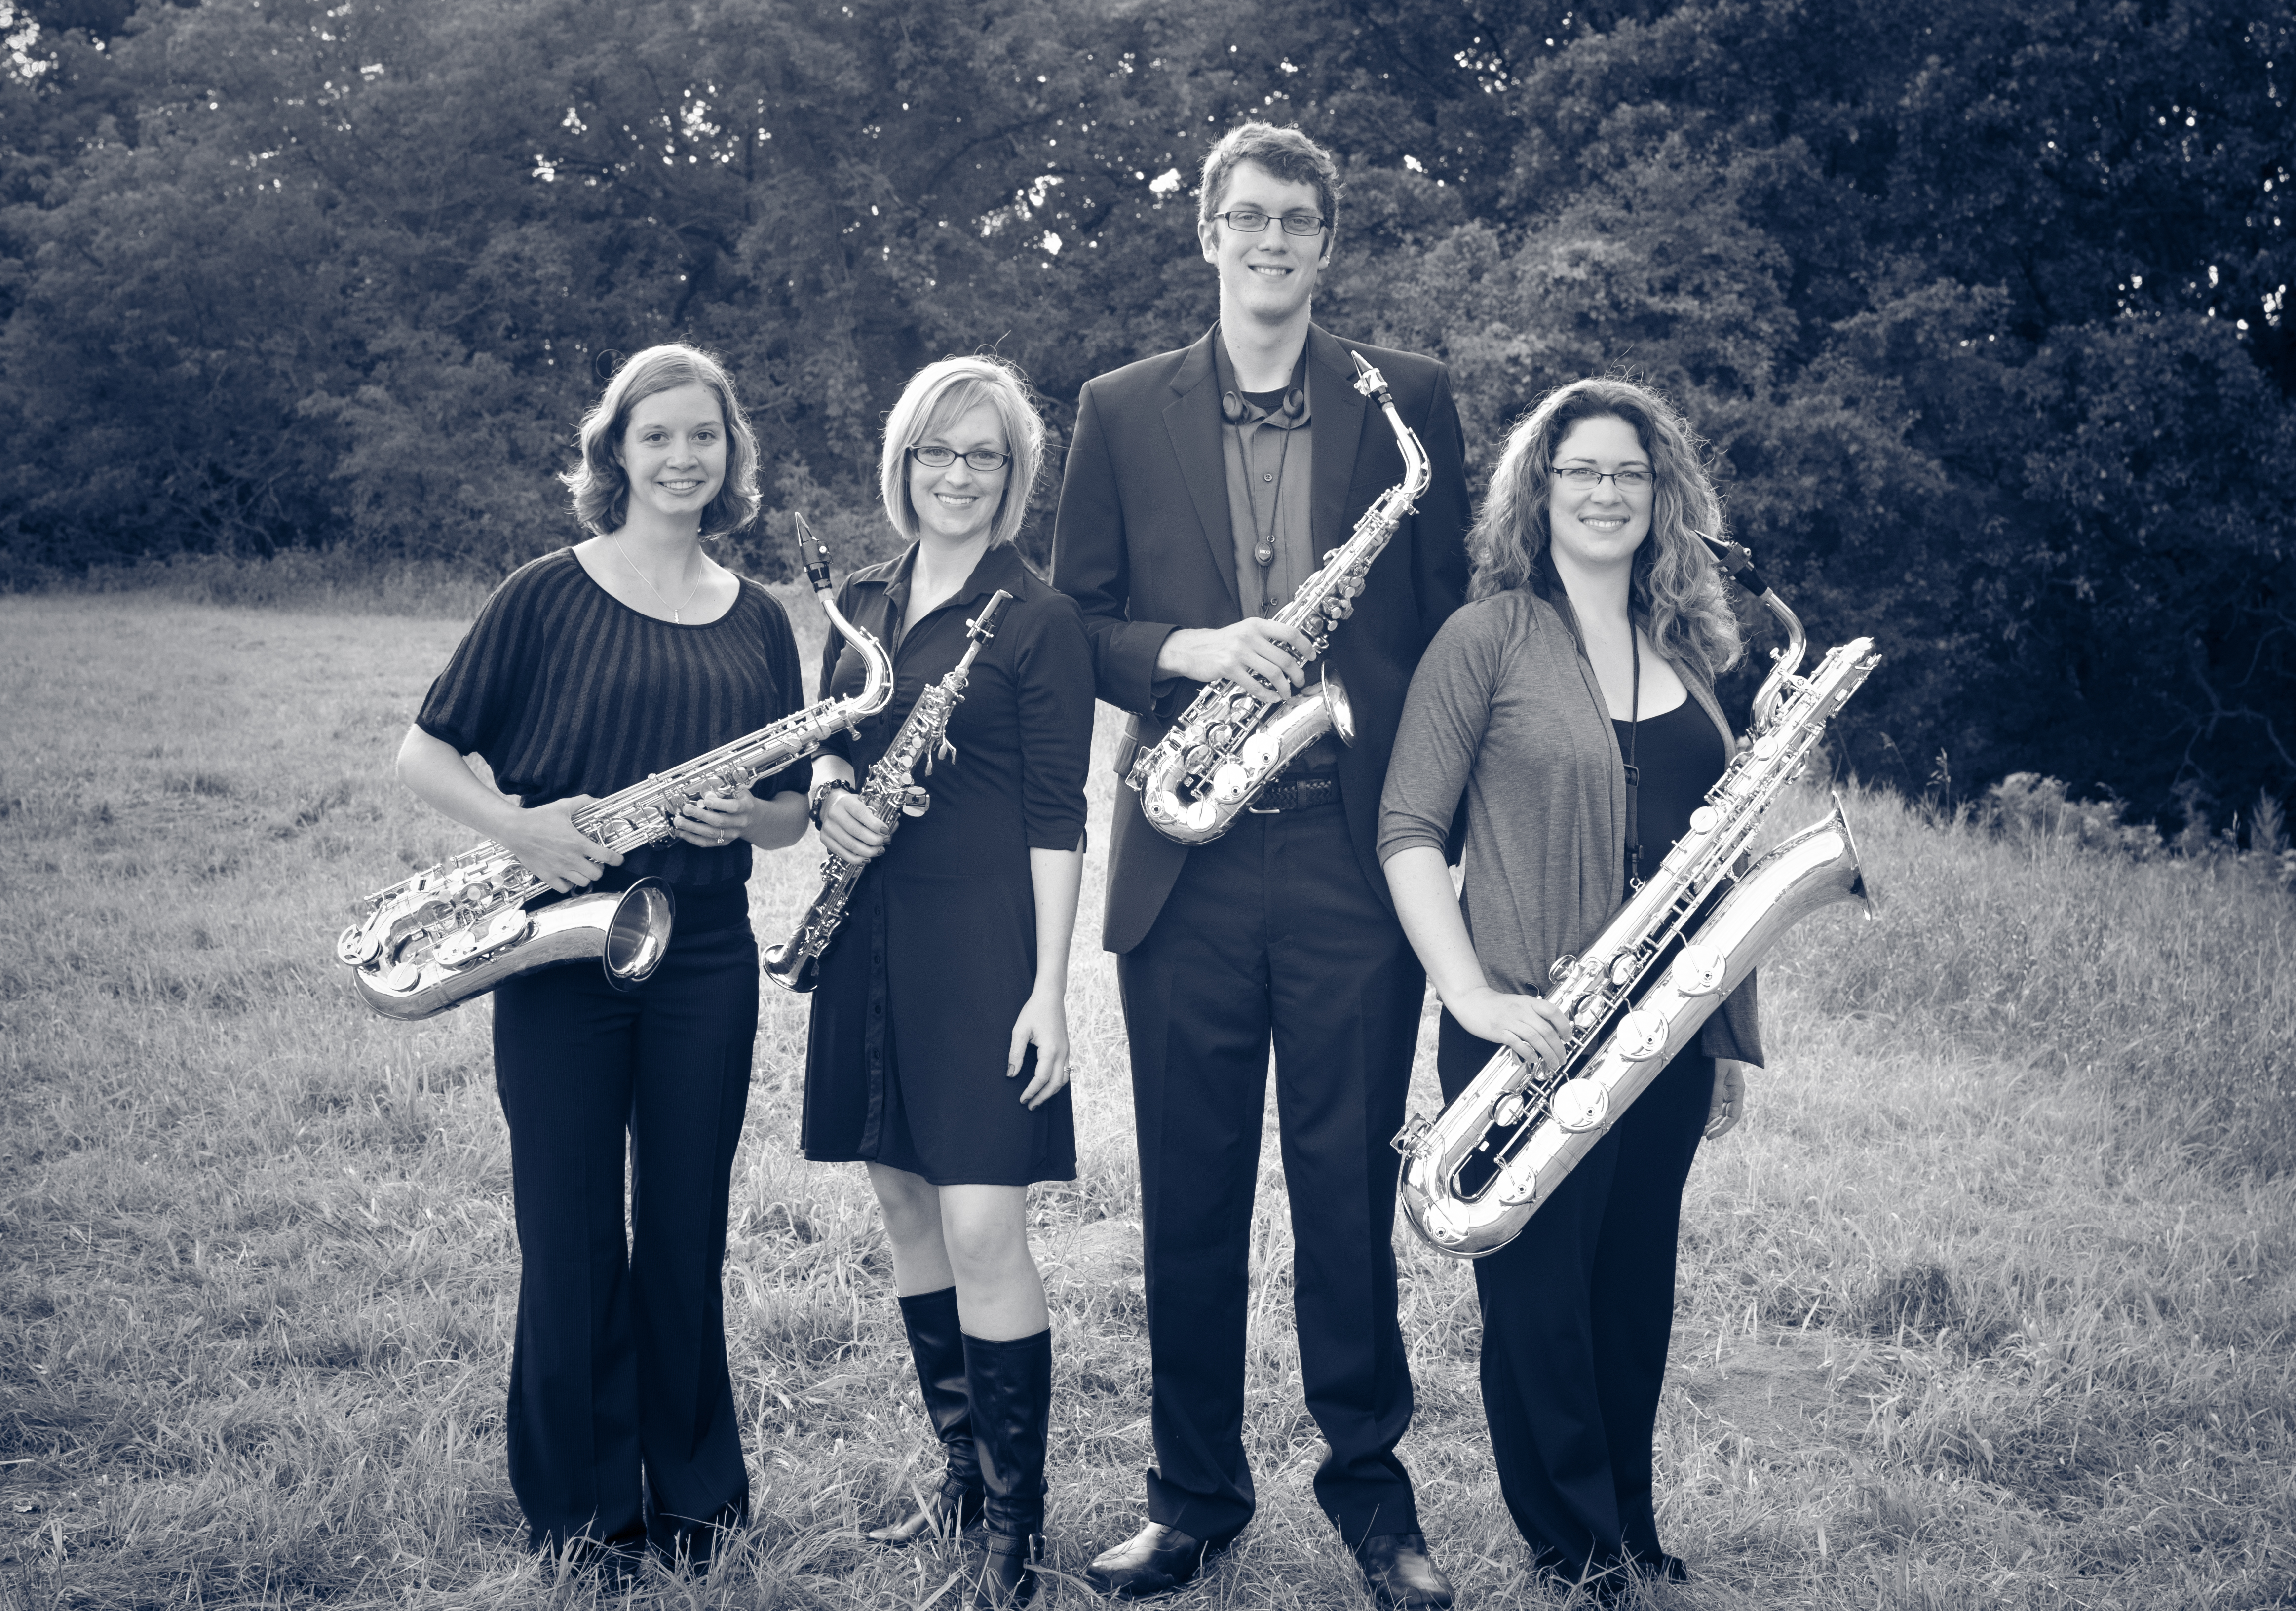 The Caprice Saxophone Quartet Features Minimalism in its Next Show